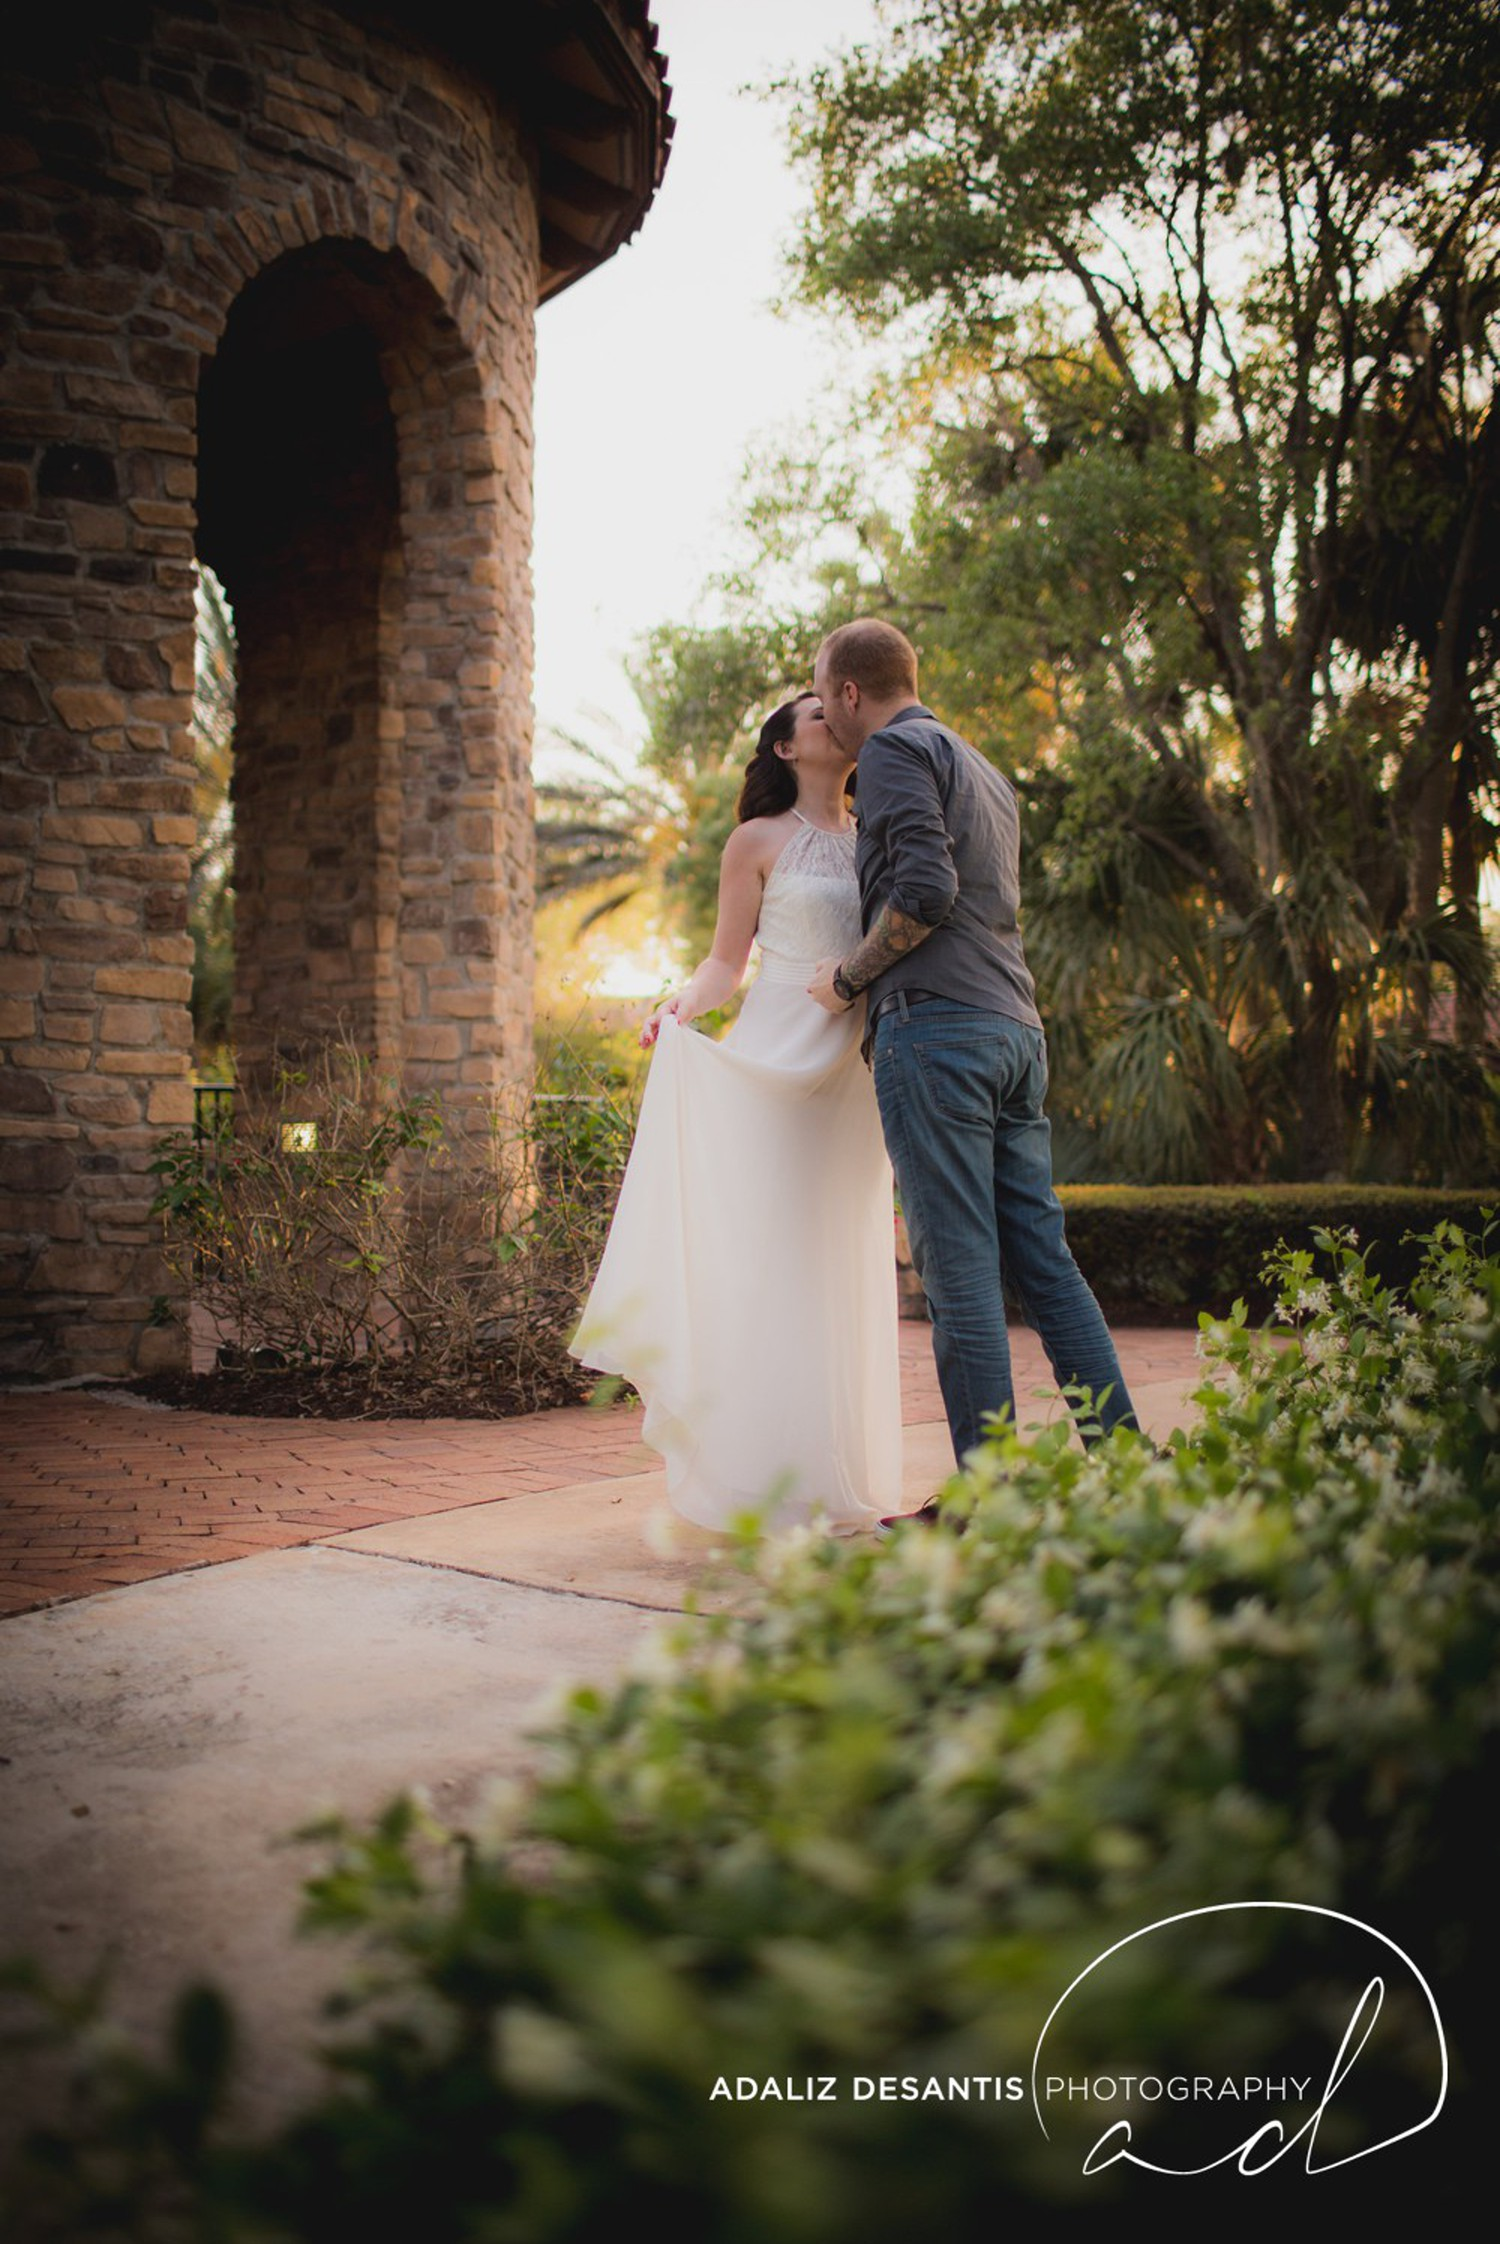 parkland golf and country club engagement session fort lauderdale south flrida 12.jpg